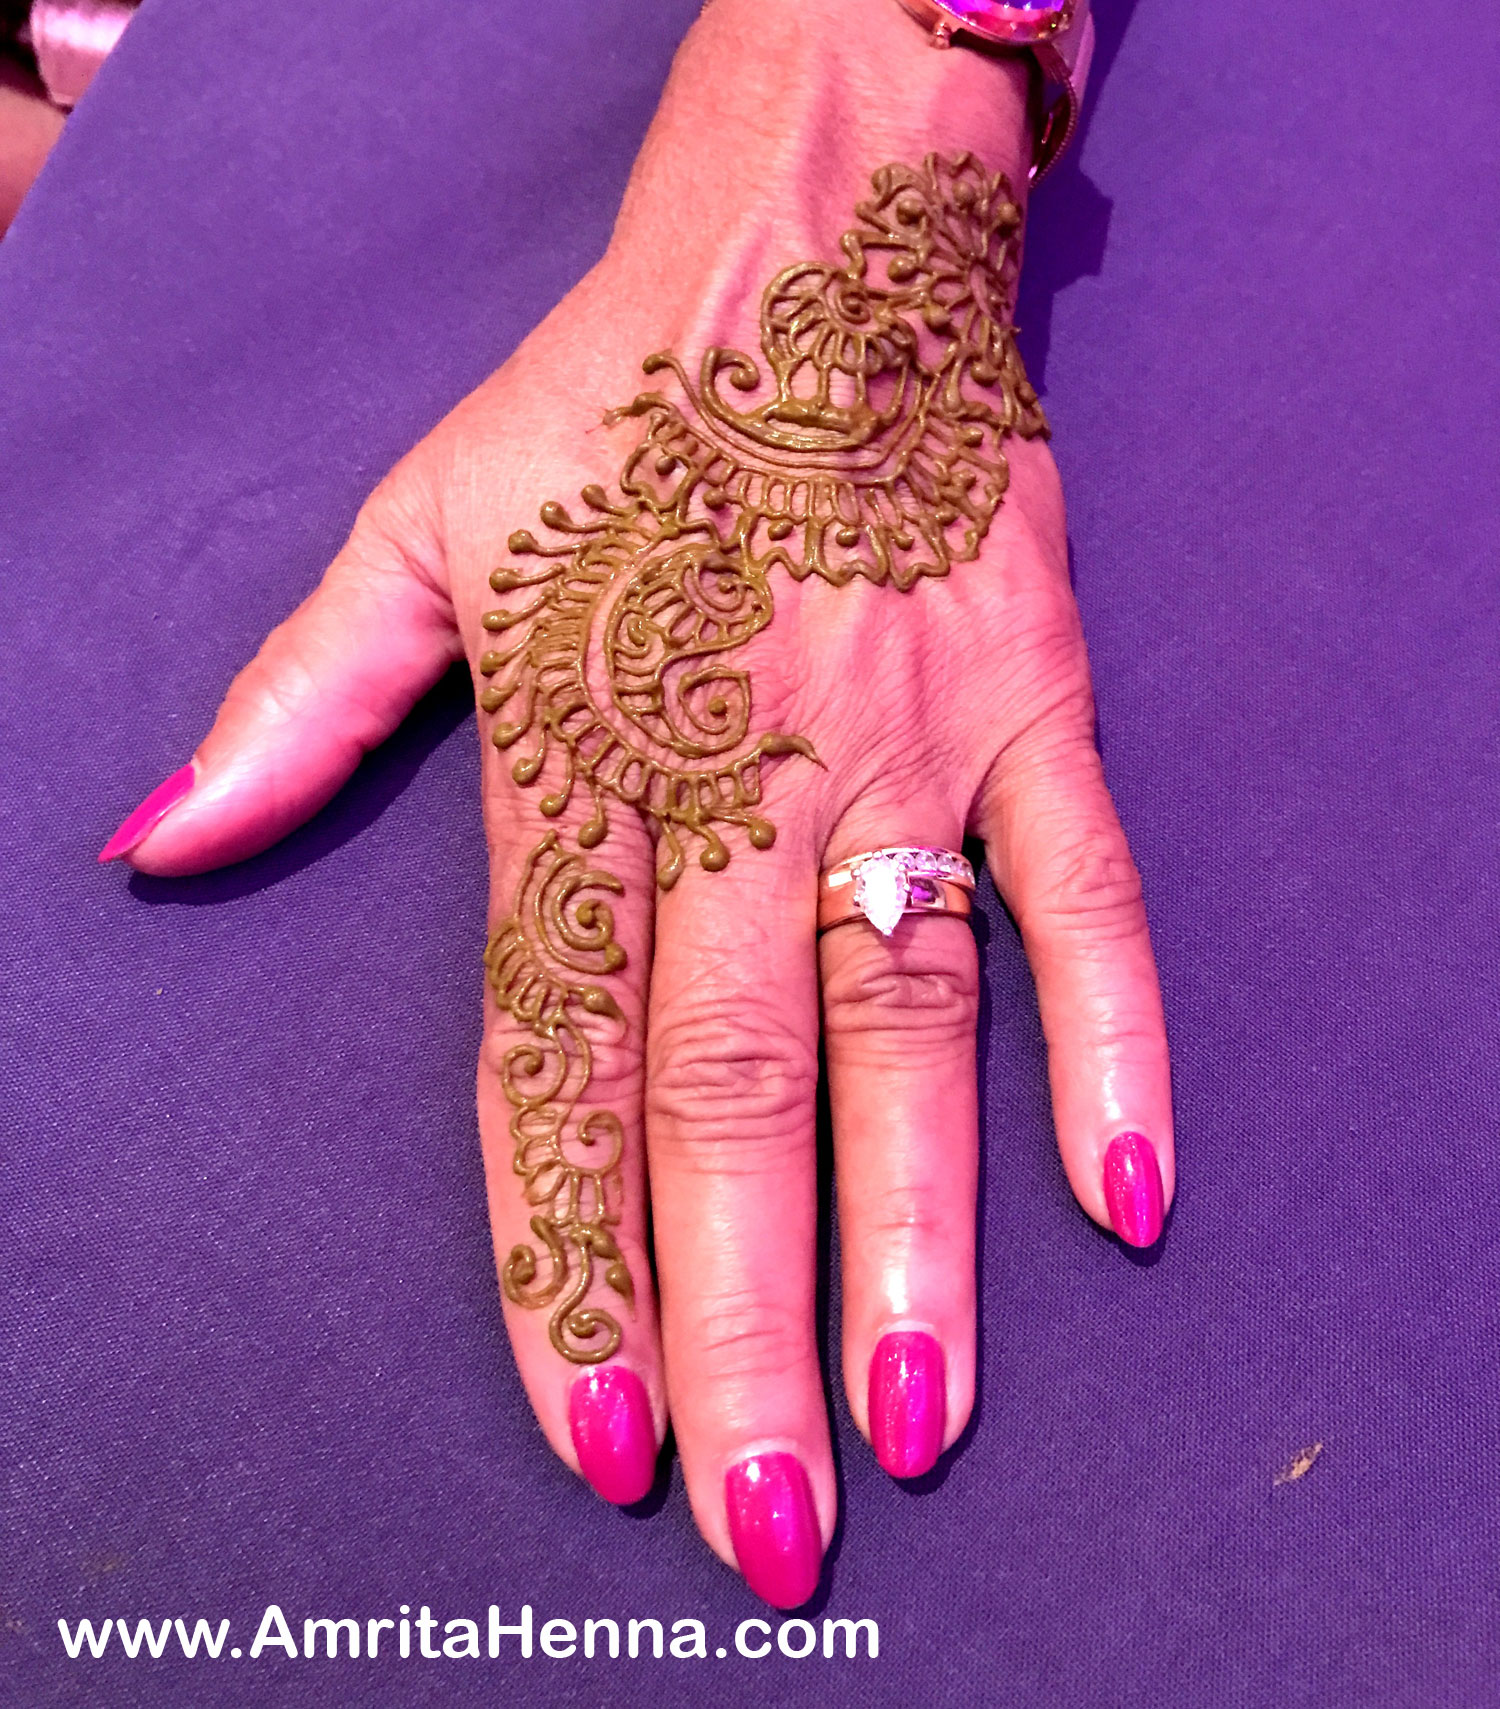 Top 10 Henna Designs for a Party - 10 Best Mehndi Designs for a Bachelorette Party - 10 Amazing Henna Designs for a Birthday Party - Top 10 Mehendi Designs for a Graduation Party - Top 10 Henna Mehndi Designs for a Baby shower Party - Sweet 16 Party Henna Designs - Best Henna Mehendi Mehndi Designs for Parties - Best Henna Mehndi Party Designs - Top 10 Stunning Mehndi Designs for a Corporate event Henna Party - 10 Beautiful and Easy Henna Designs for a Henna Party